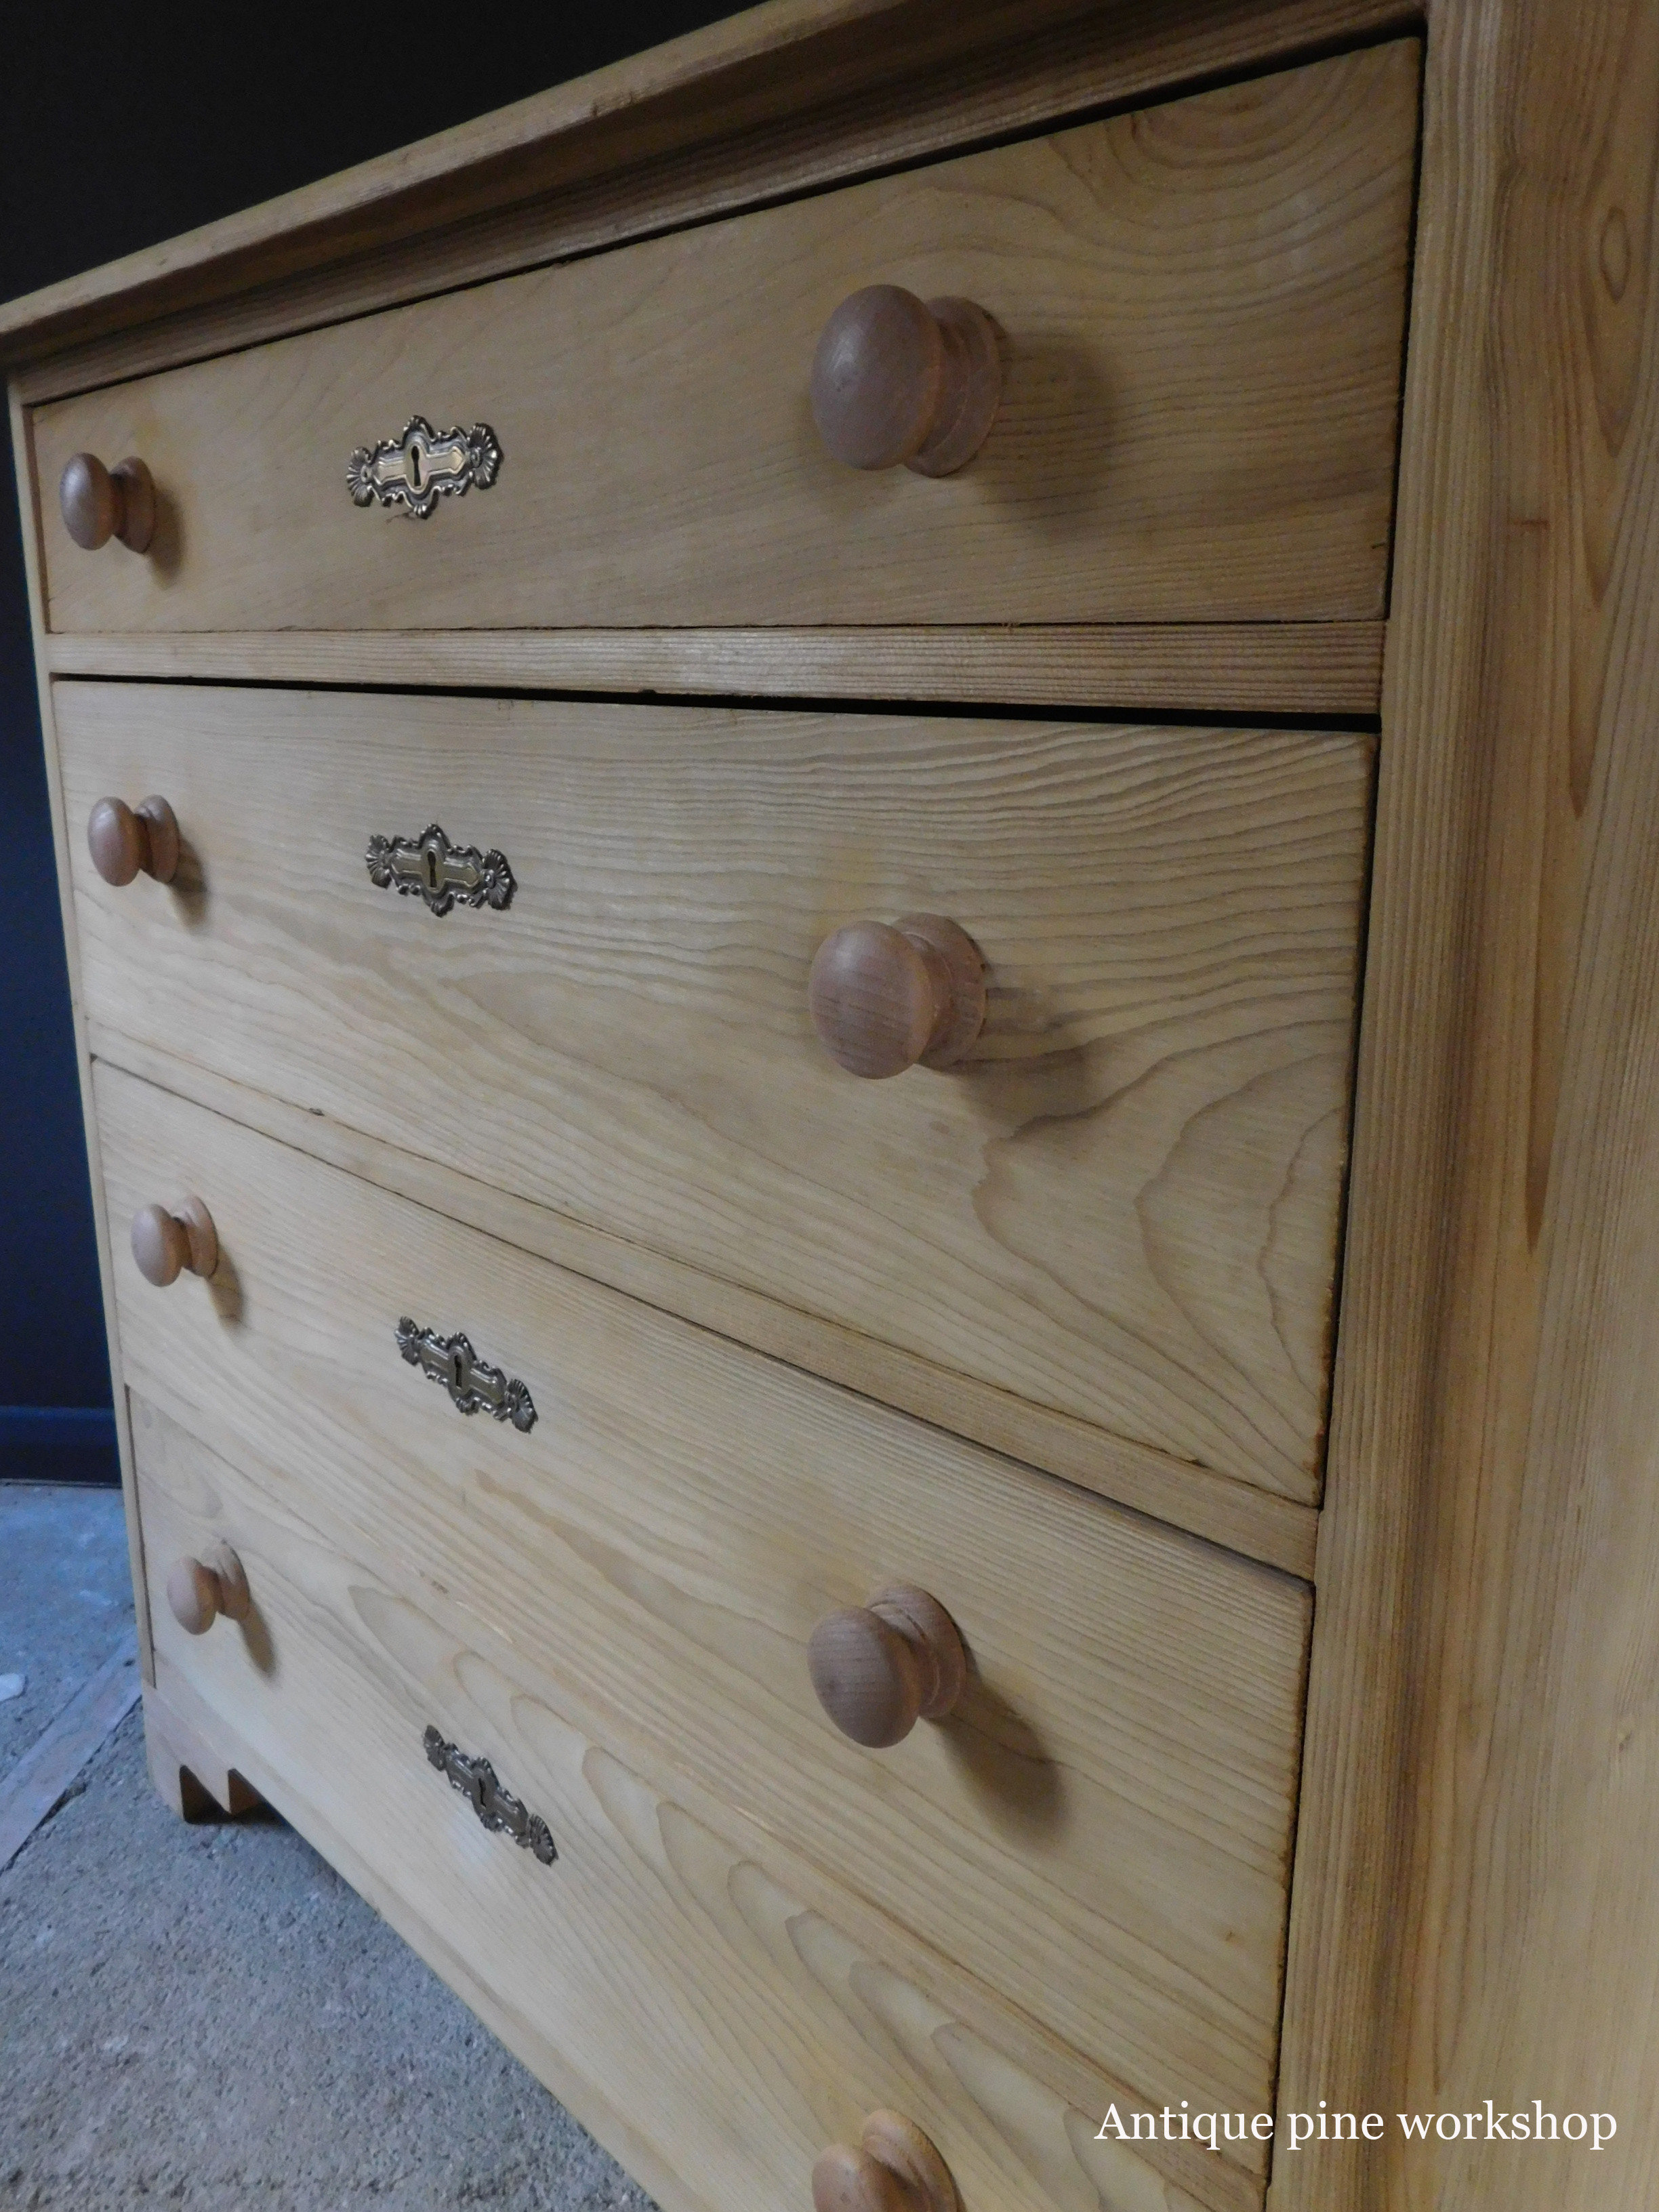 Victorian Pine Chest Of Drawers Antique Pine Chest Of Drawers Old Pine Antique Pine Workshop